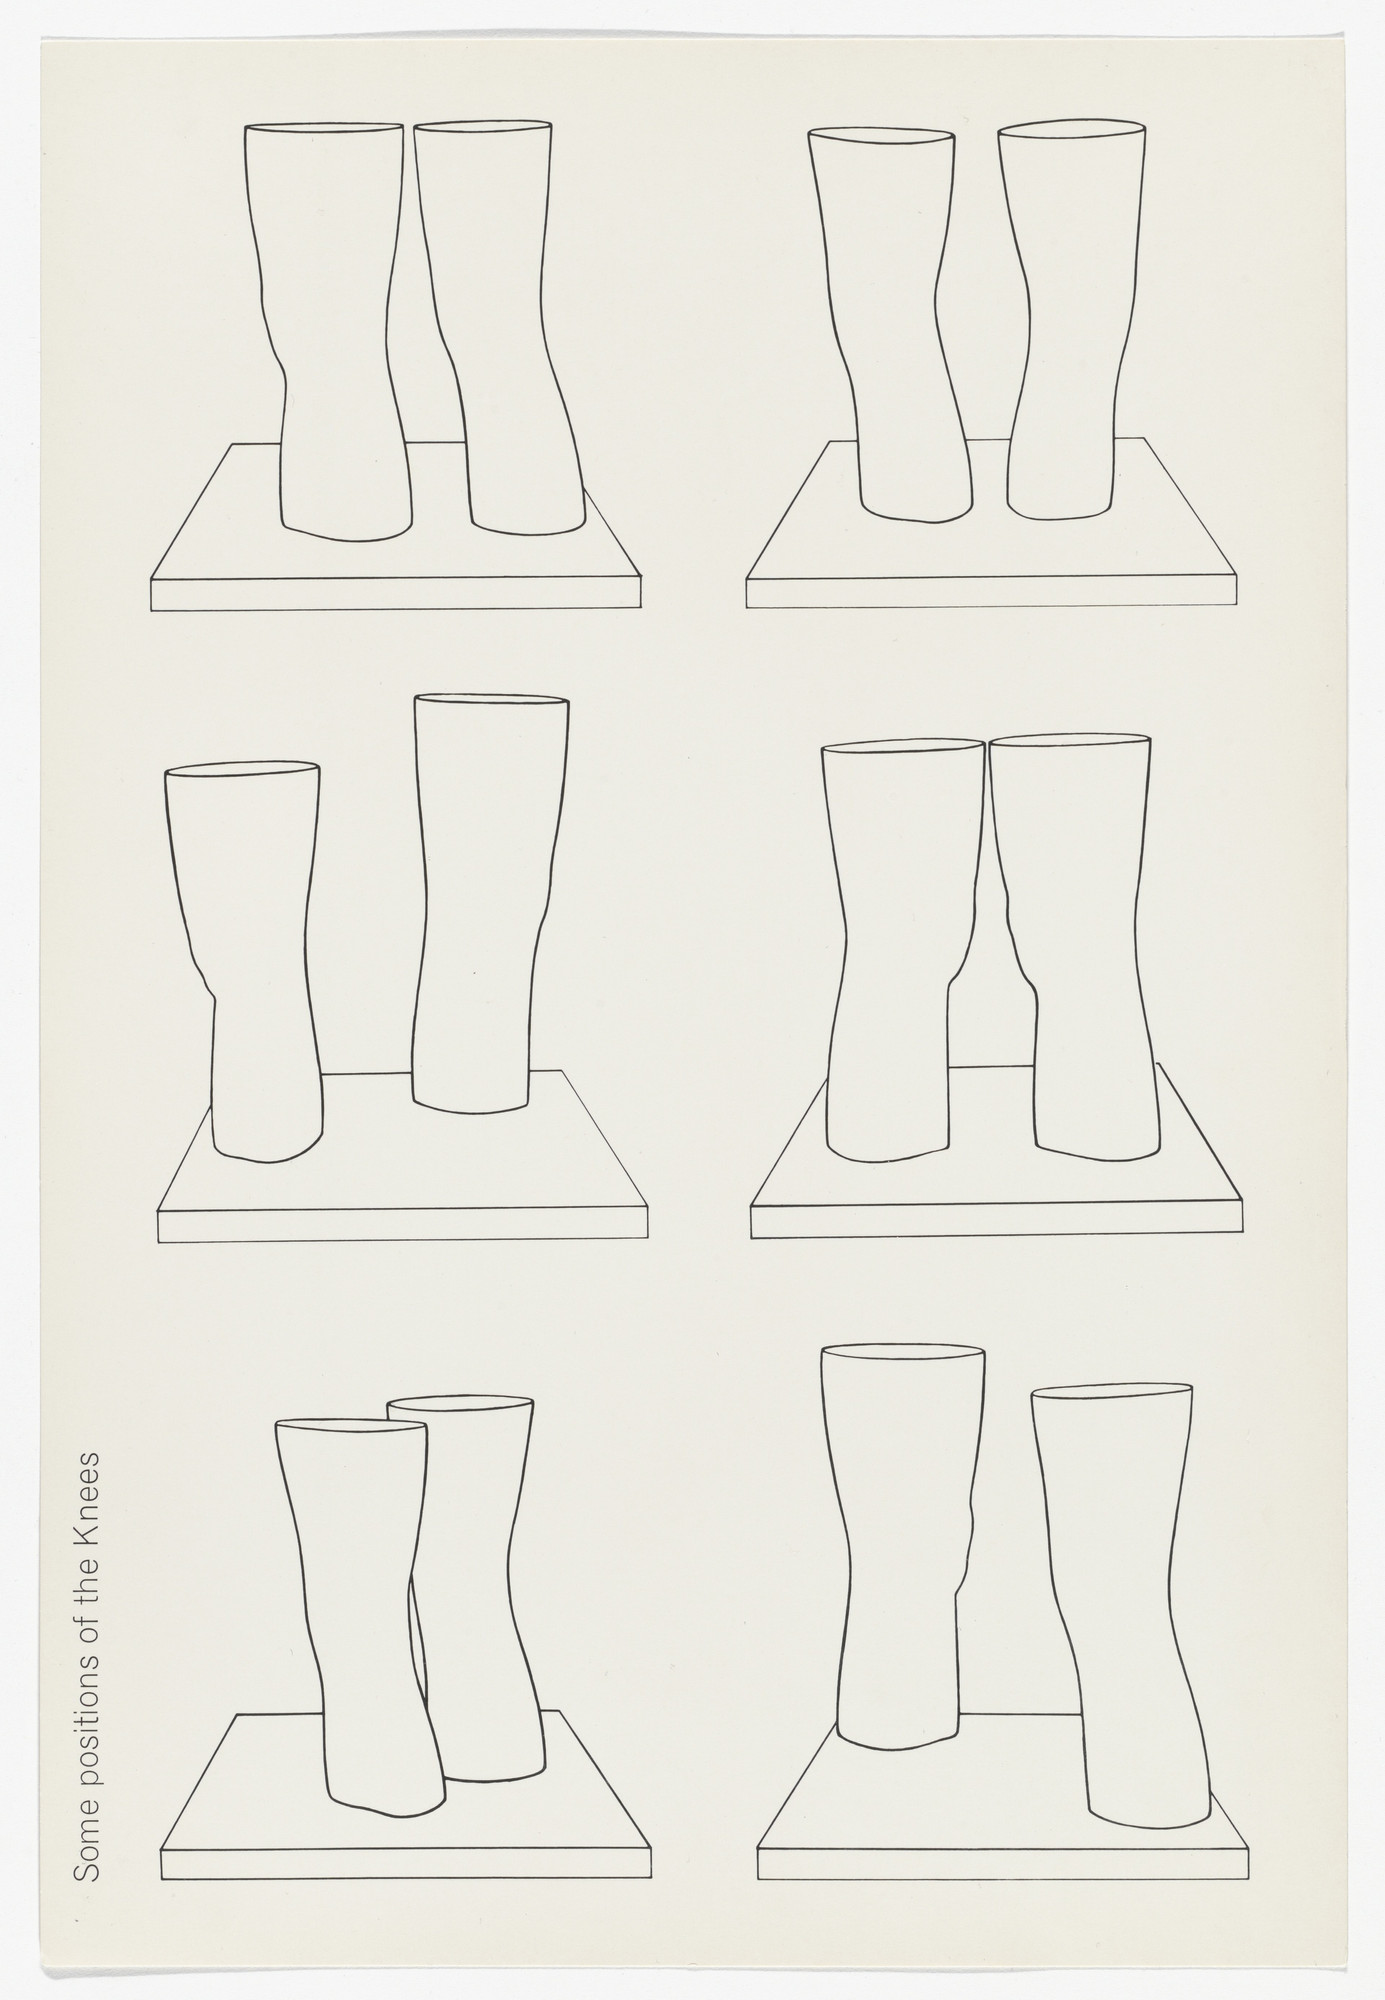 Claes Oldenburg. Untitled (Some Positions of the Knees) from London Knees 1966. 1966, published 1968